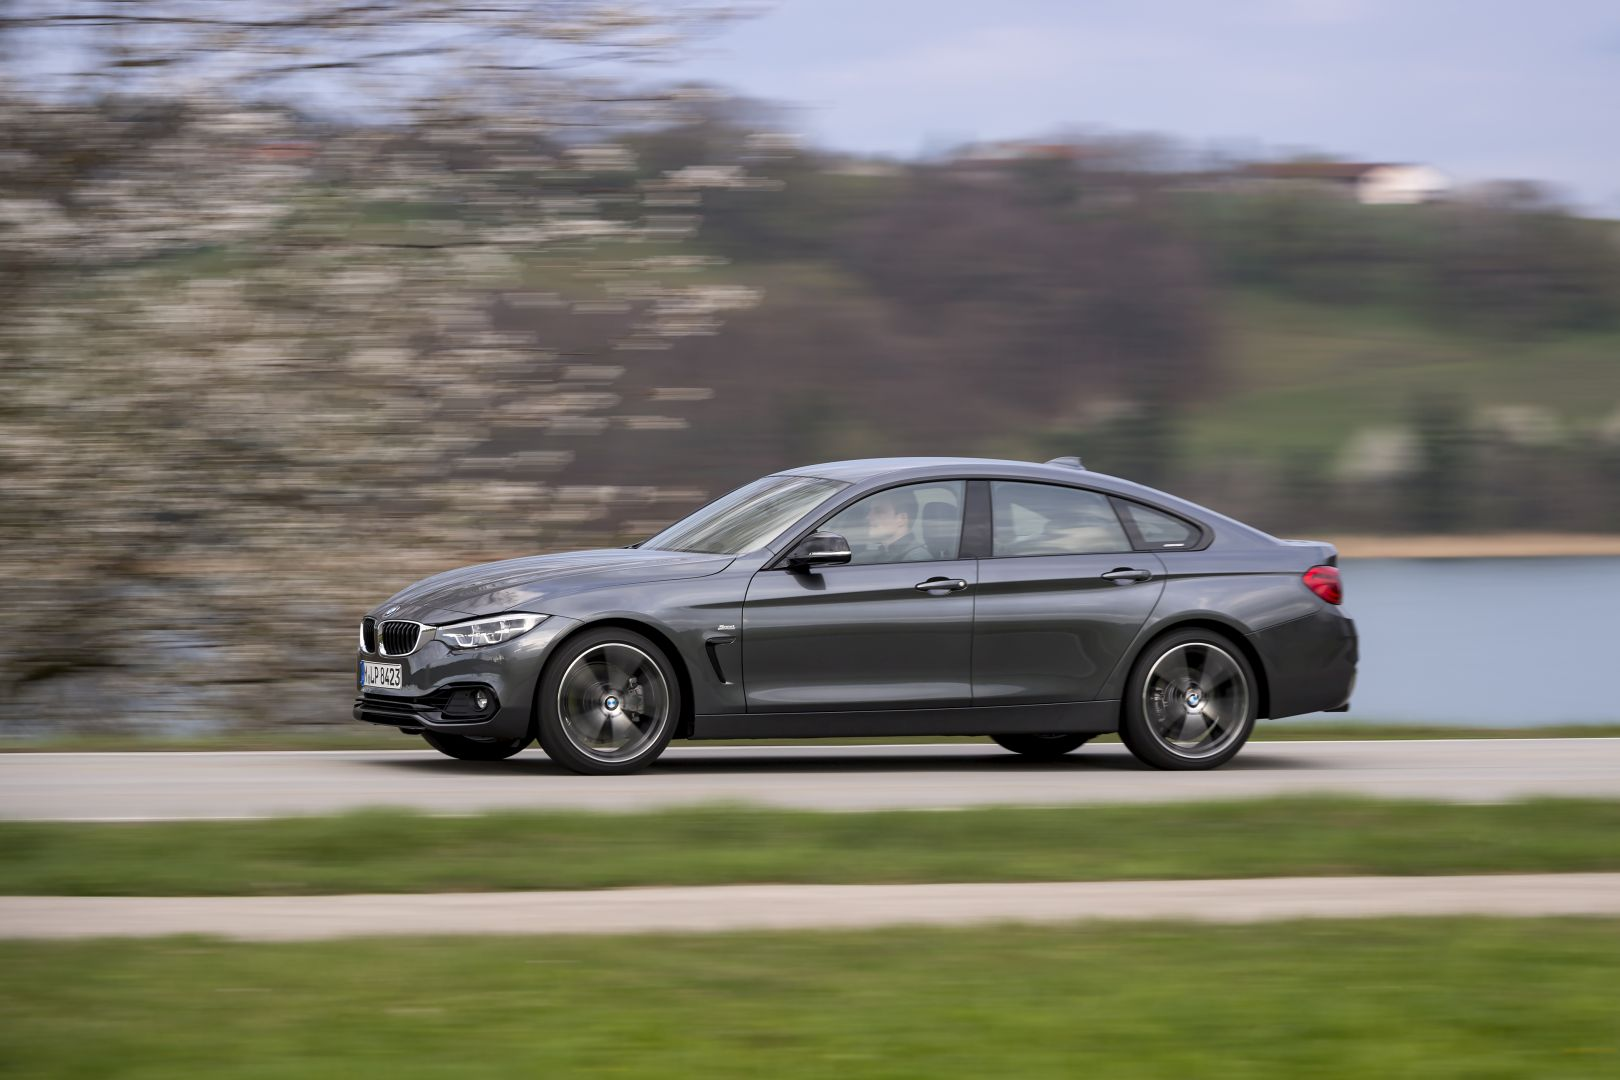 Bmw 4 Series Gran Coupe Dimensions Bmw 4 Series Gran Coupe Specs And Photos 2018 2019